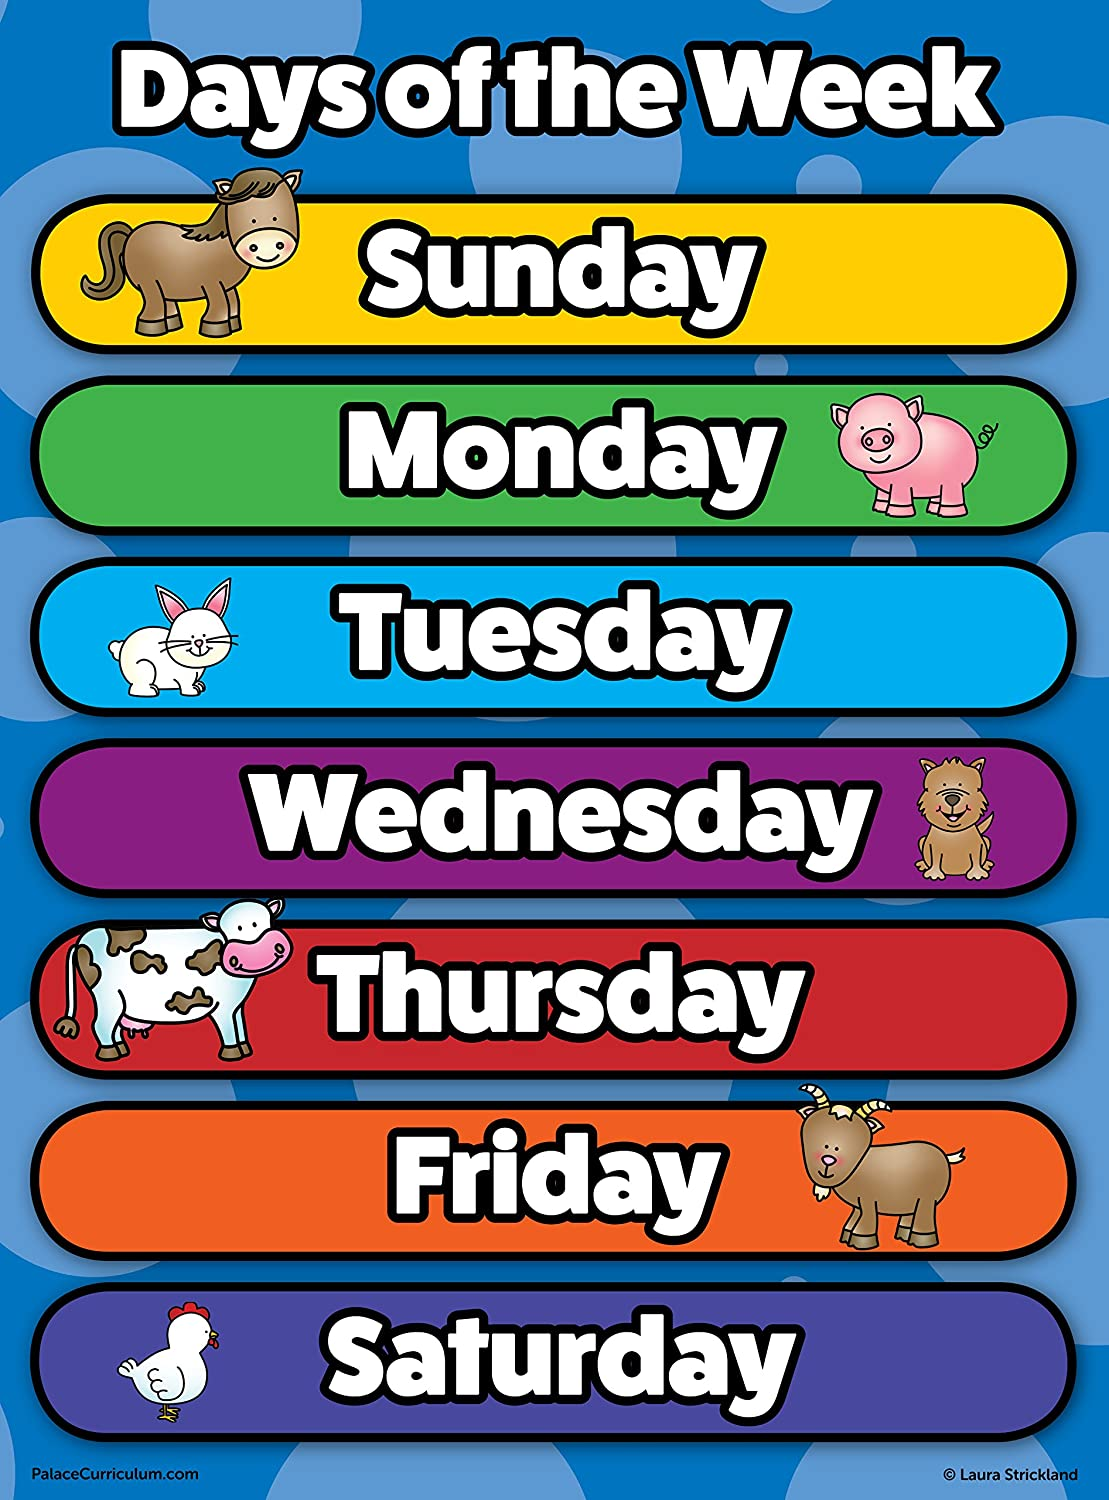 Days of The Week Poster Chart - Laminated - Double Sided (18 x 24)